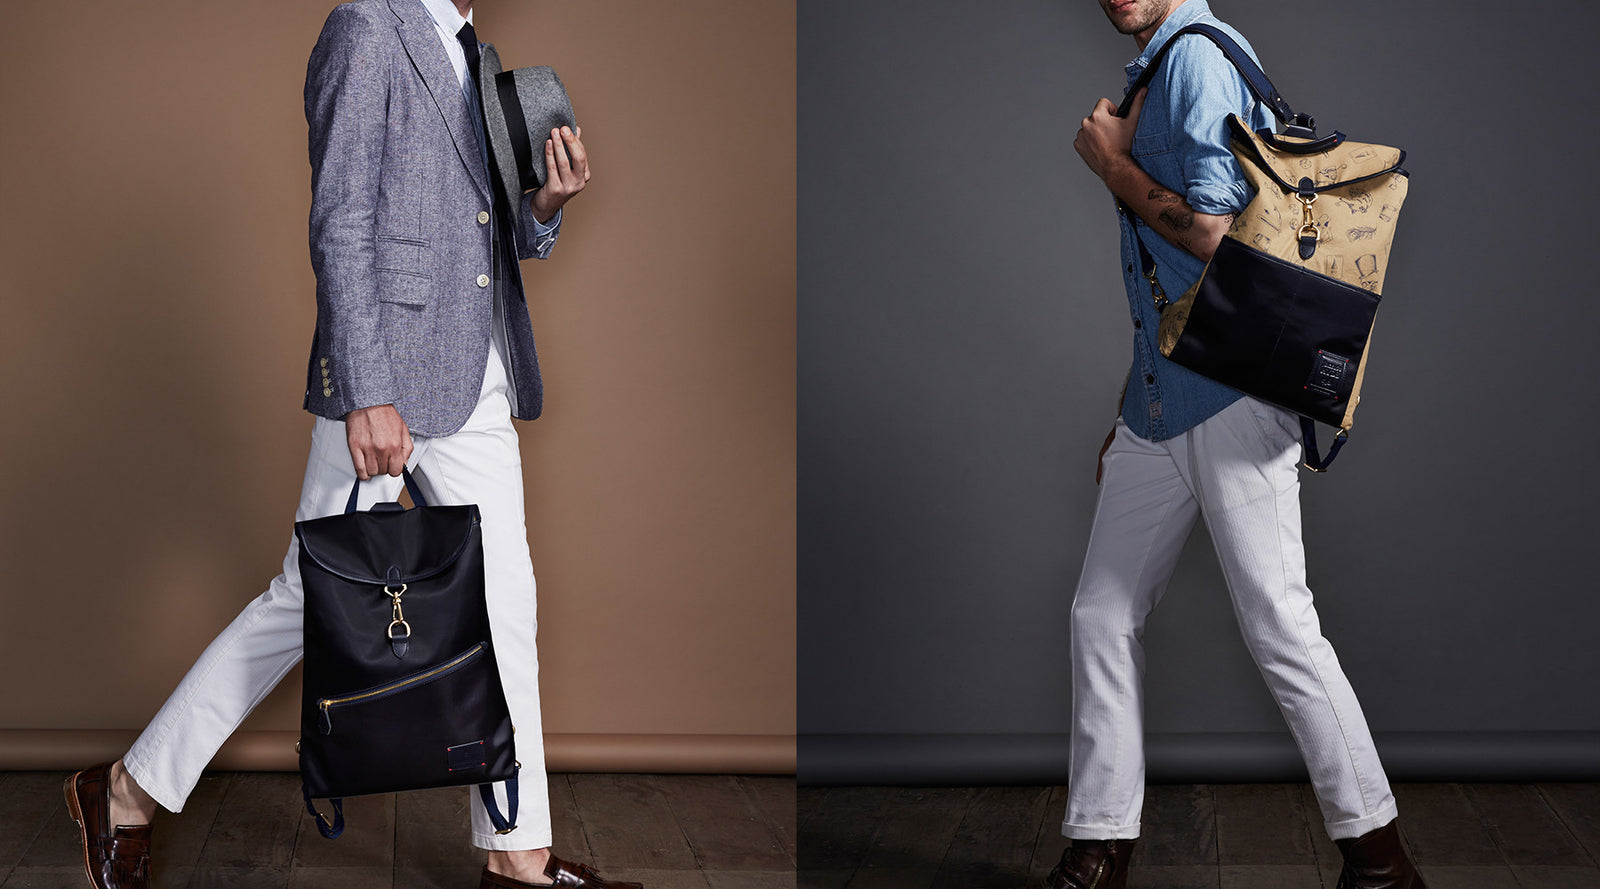 c79a6745ad7a 19th Jan 2016 | Man bags in Singapore: Where to buy modern briefcases,  sturdy